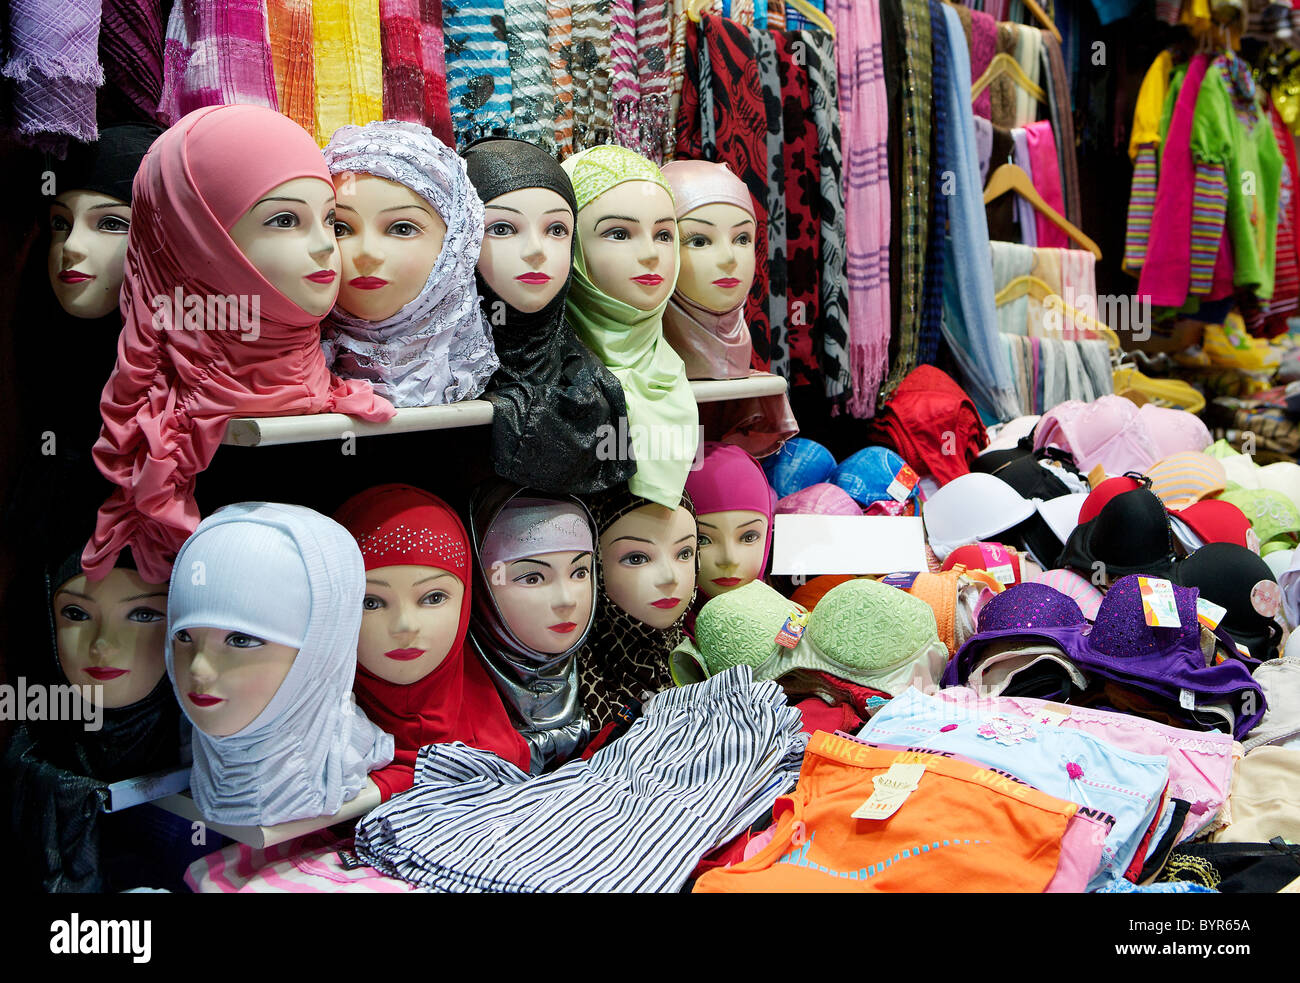 Traditional headscarves for sale in Damascus souk, Syria - Stock Image